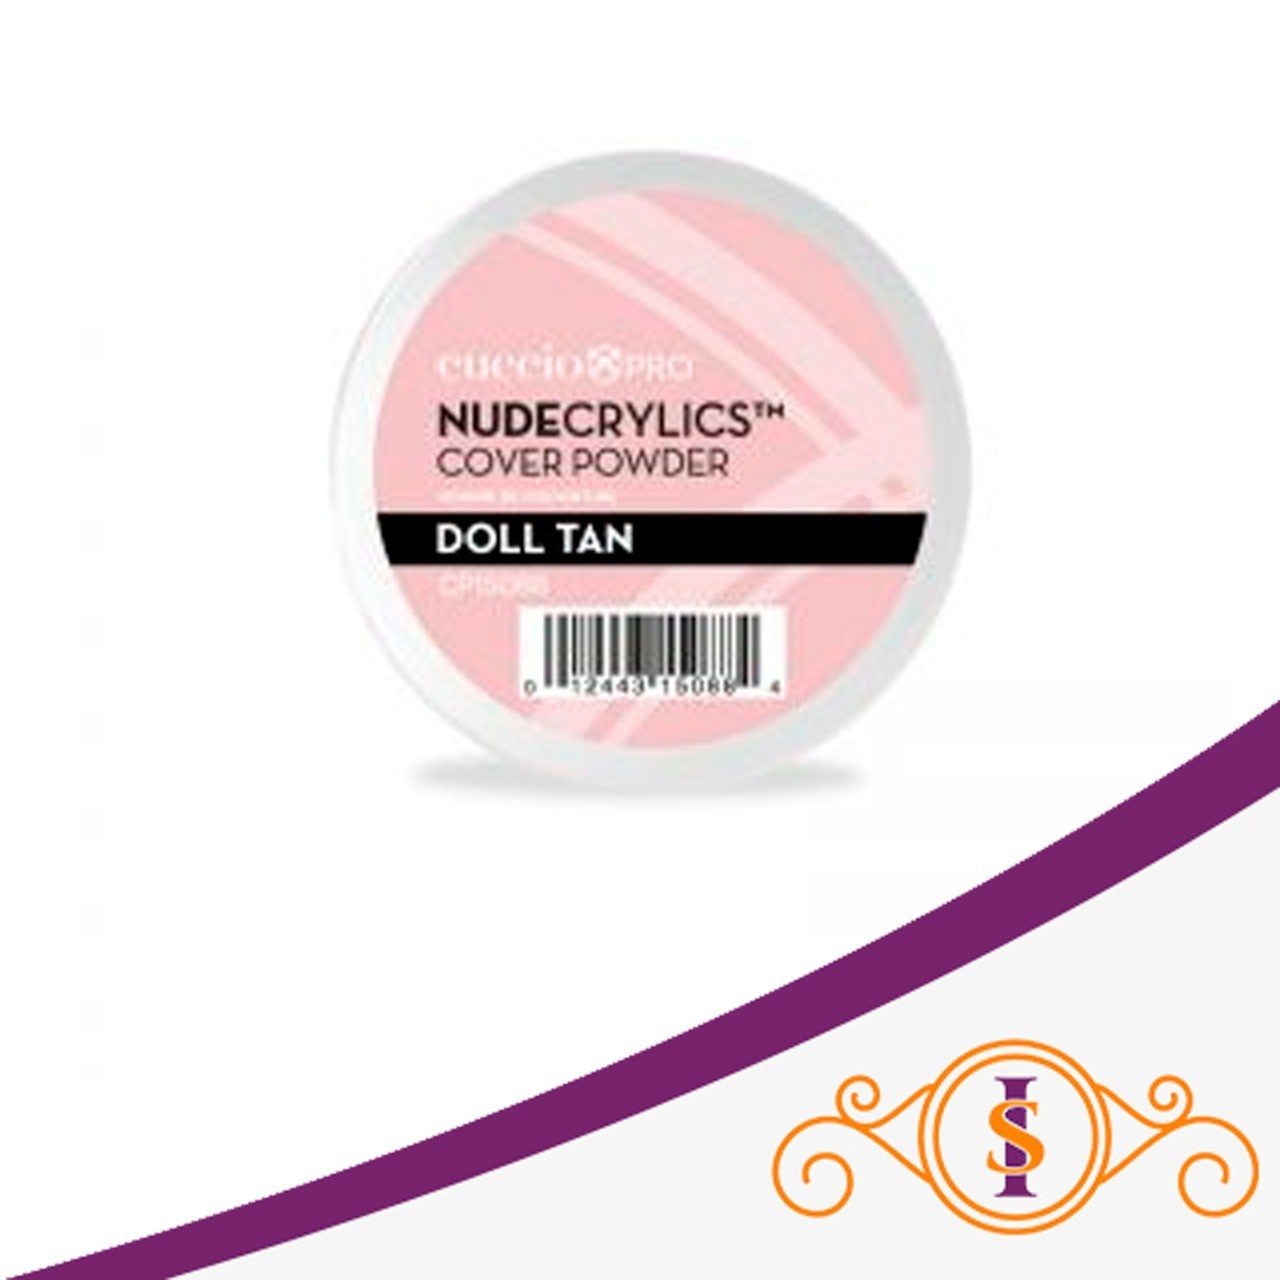 Pó Acrílico Powder Nudecrylic - Doll Tan 45g